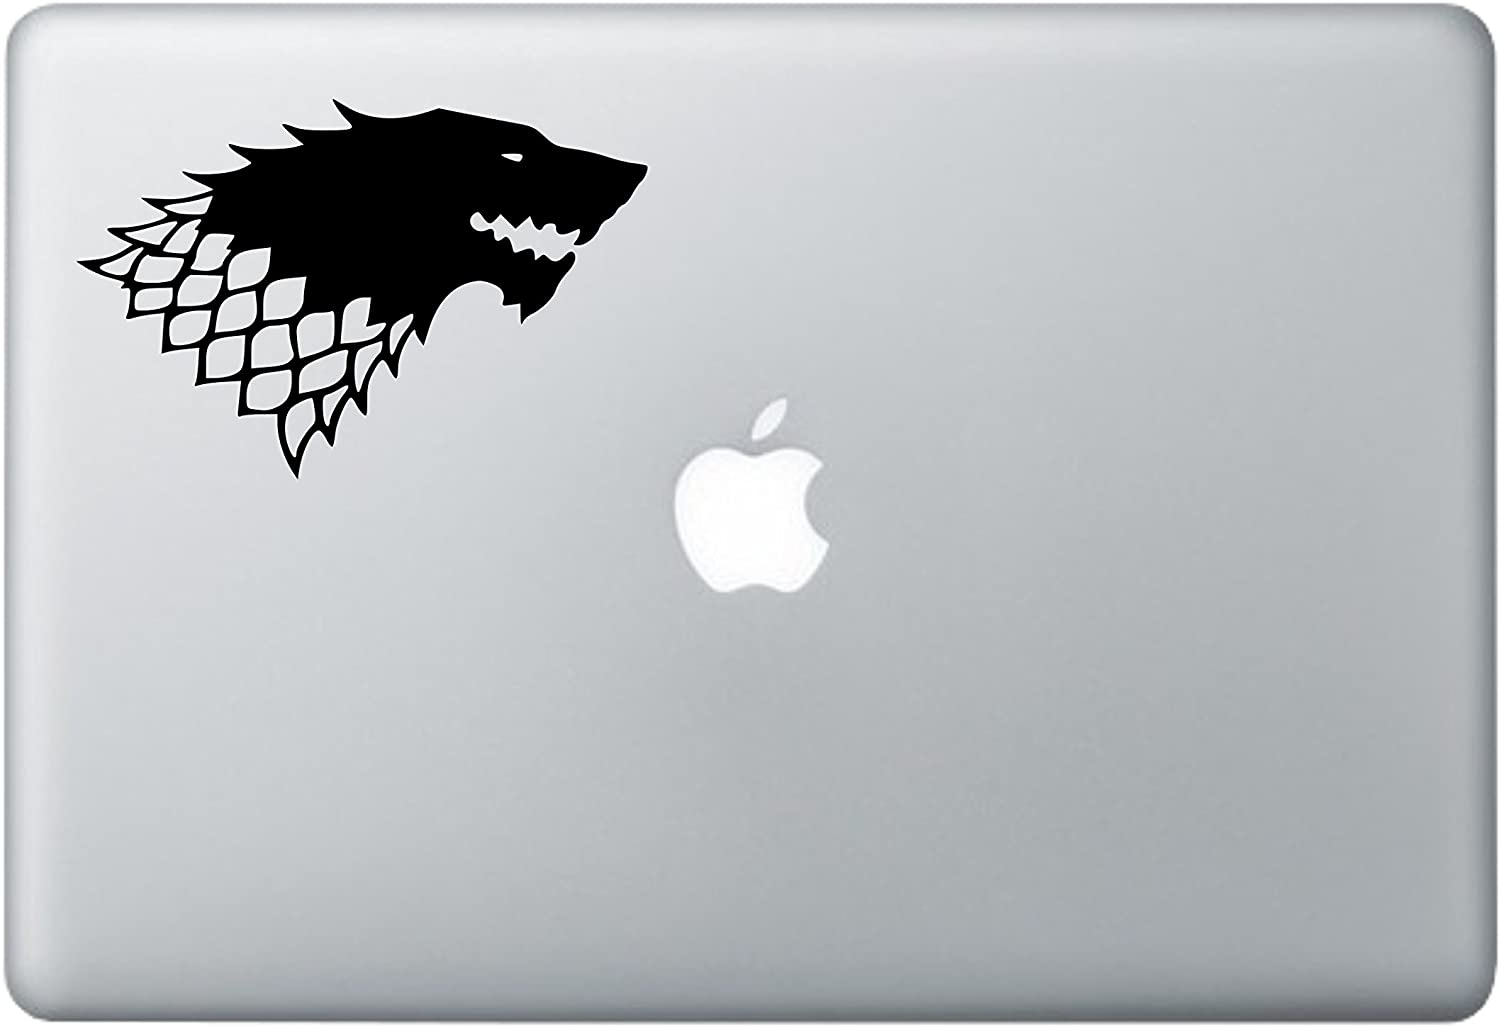 Game of Thrones - House of Stark Sticker, Vinyl Decal Sticker for MacBook/Laptop, Car/Truck, Window or Any Flat Surface. by A-B Trader.